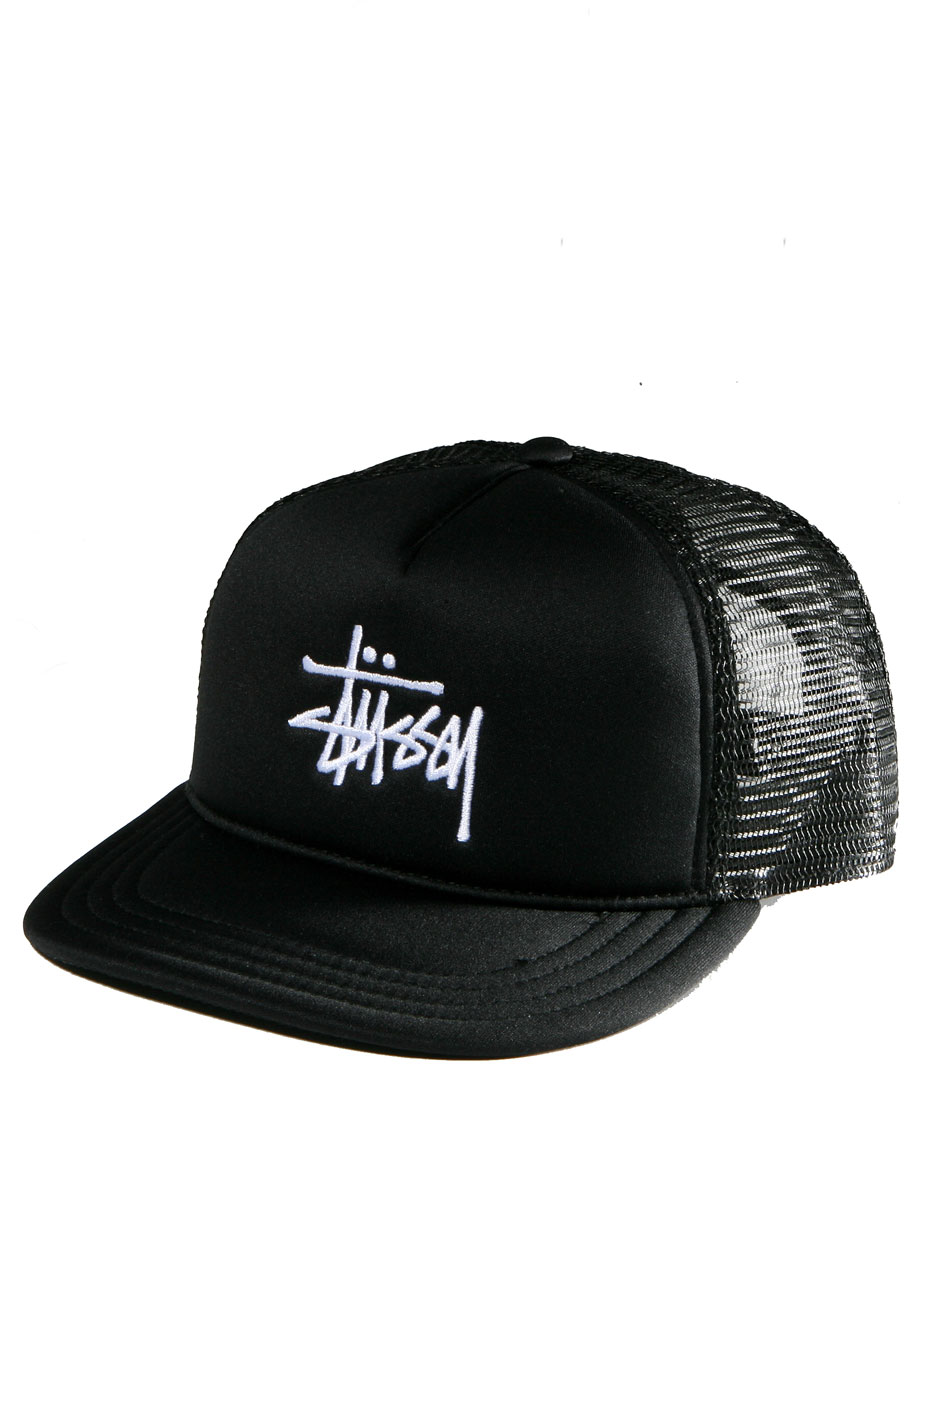 cd47938f341 Stüssy - Basic Stock - Mesh Cap - Streetwear Shop - Impericon.com AU